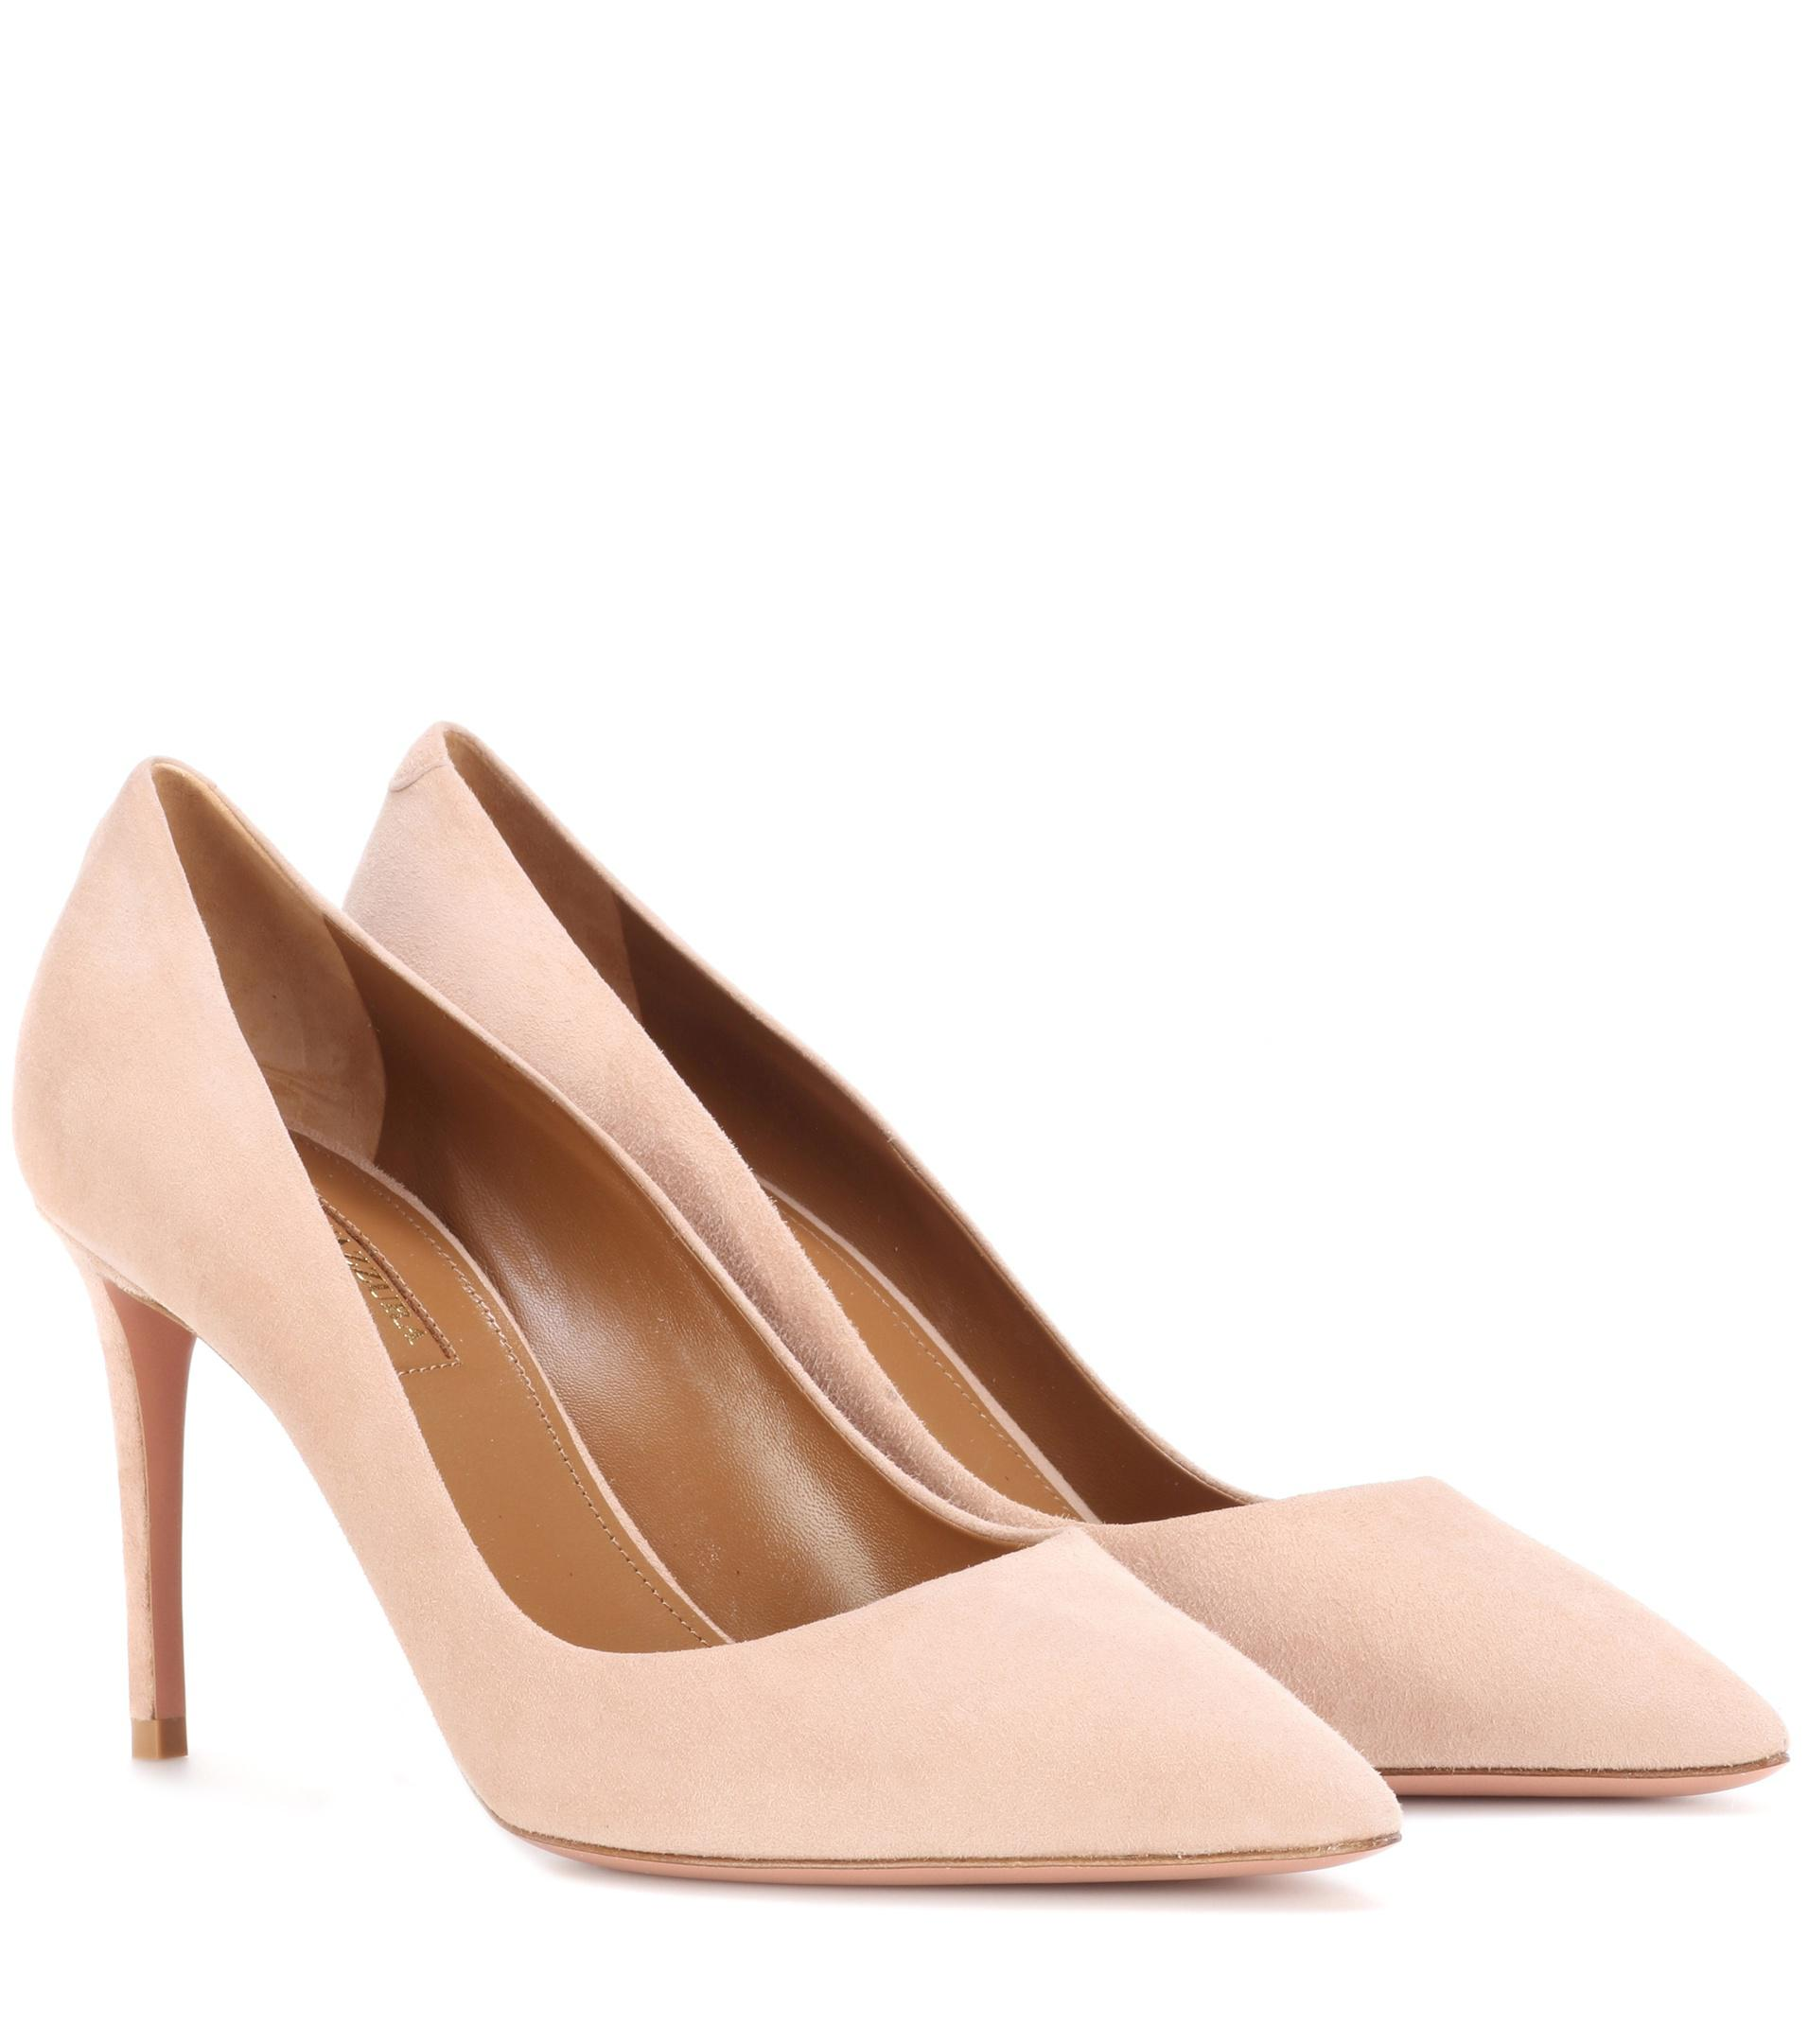 Pure 45 suede slingback pumps Aquazzura